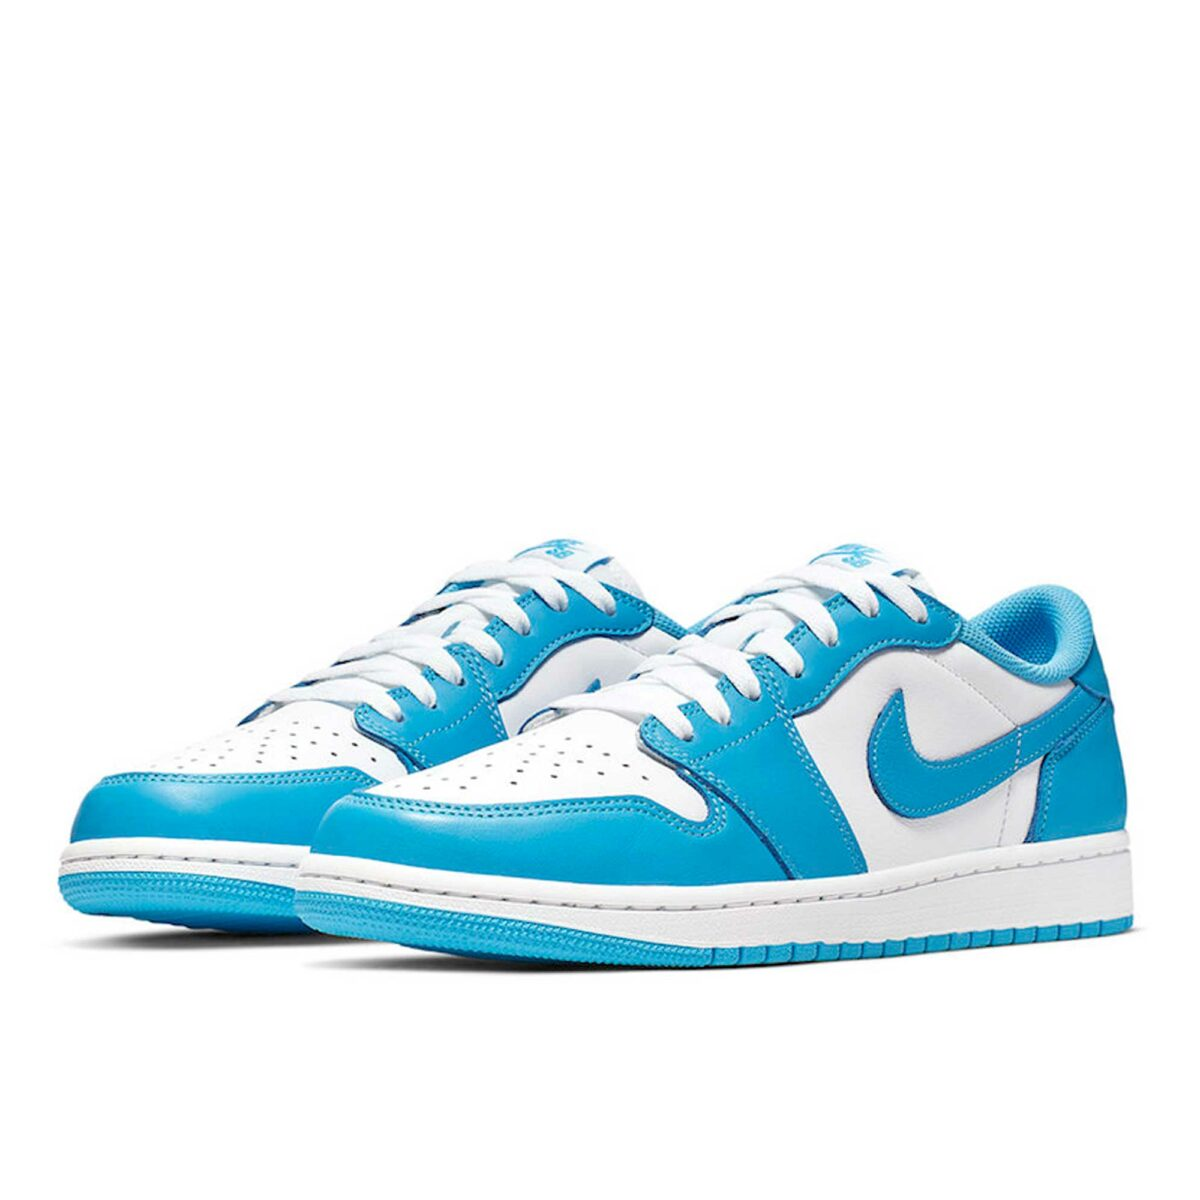 nike sb air Jordan 1 low unc blue white cj7891_401 купить